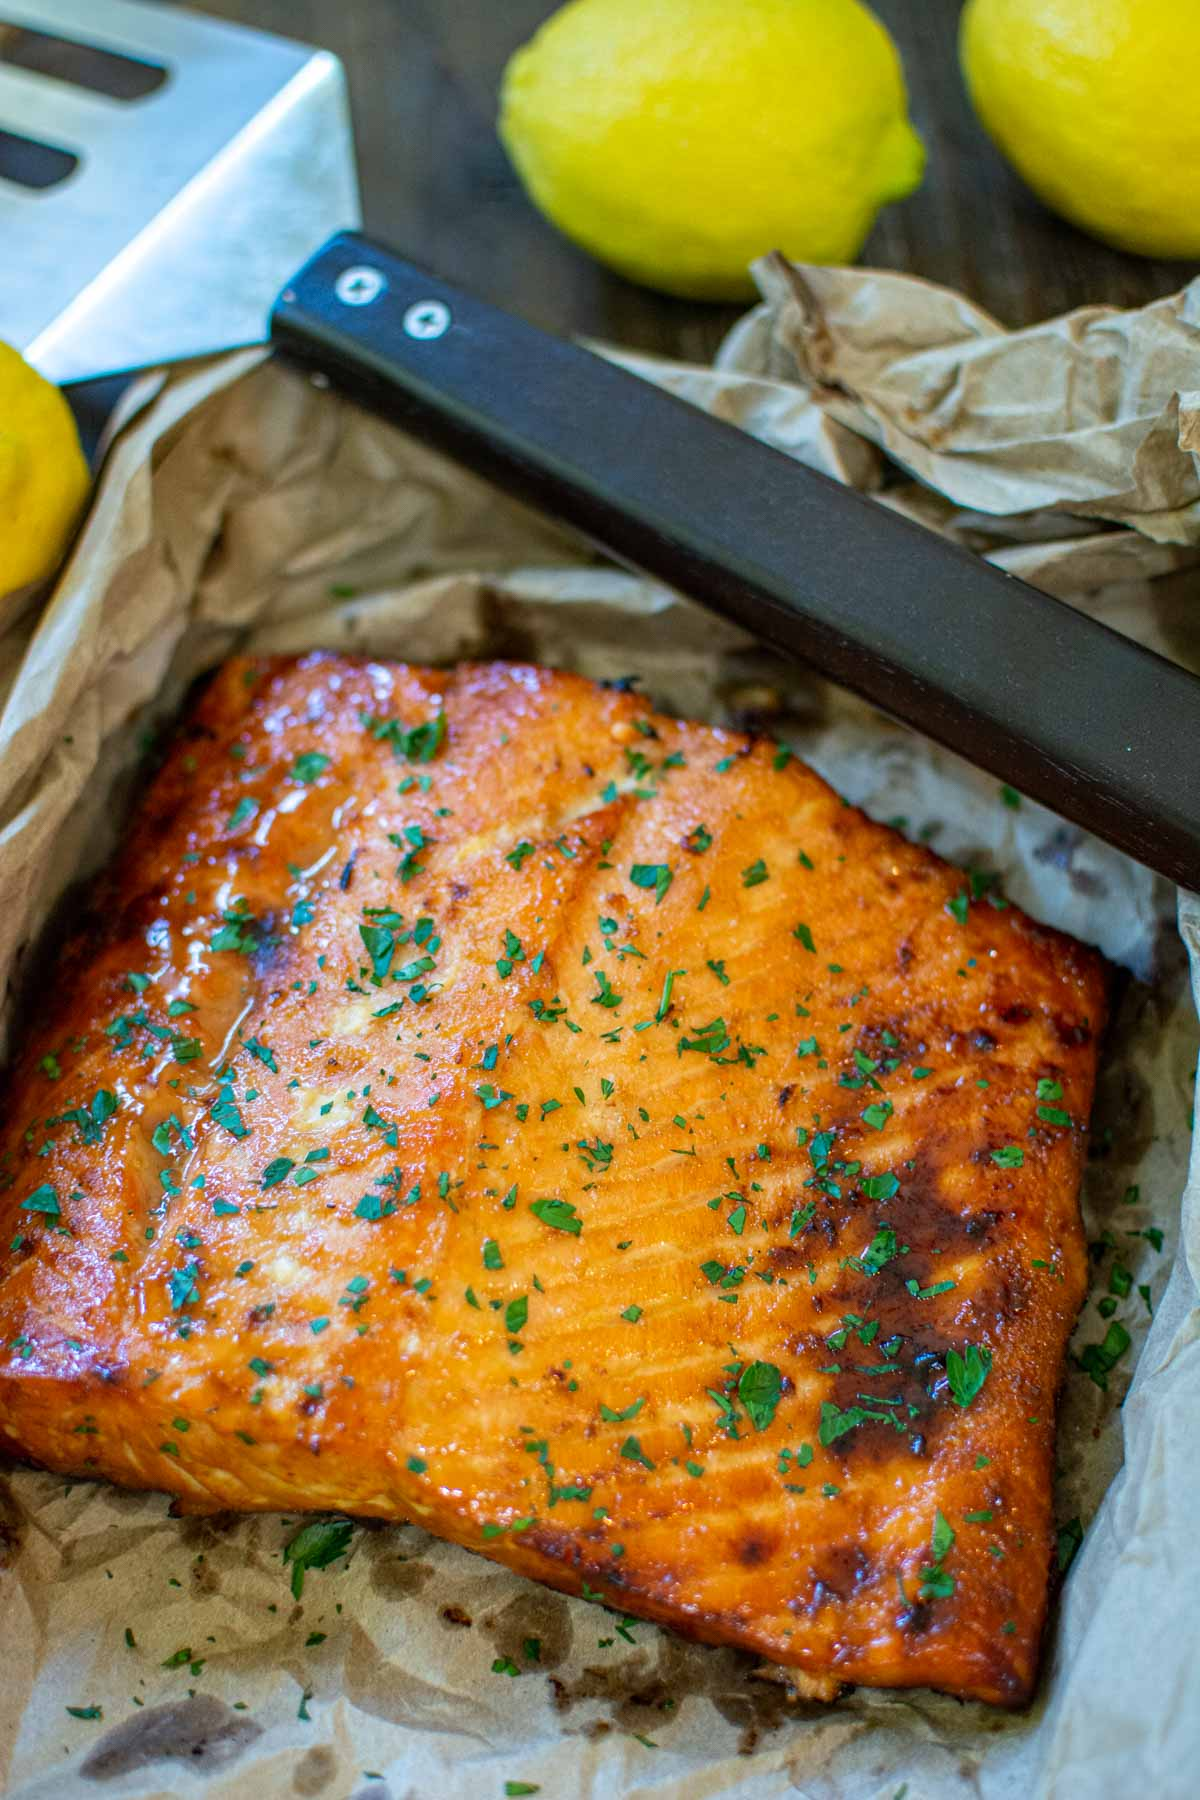 salmon on a sheet pan after grilling with lemons in the background.